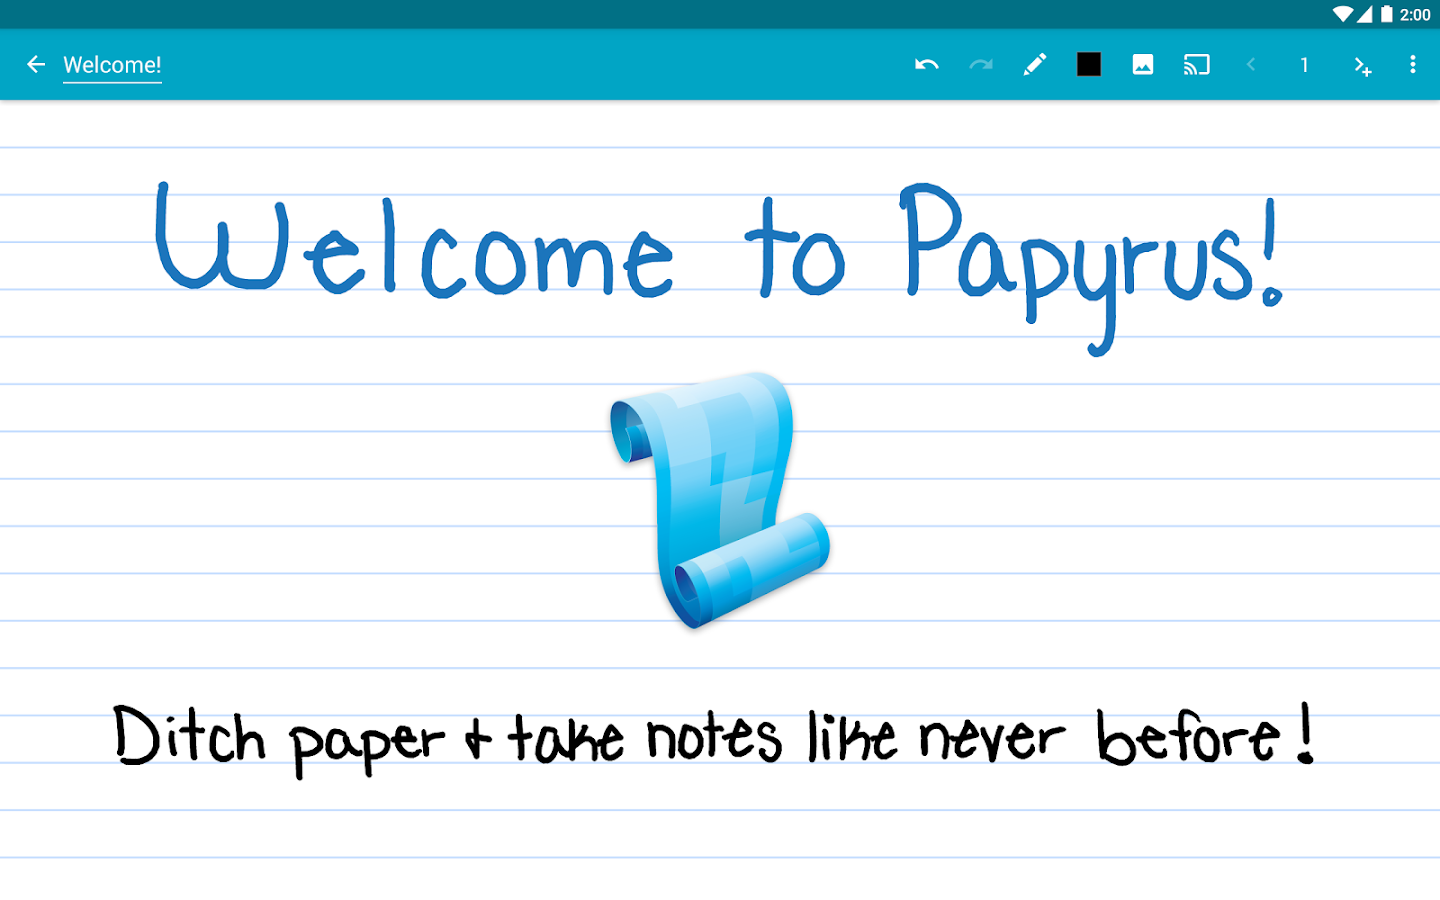 http://full-android-apk.blogspot.com/2015/07/papyrus-premium-natural-note-taking.html